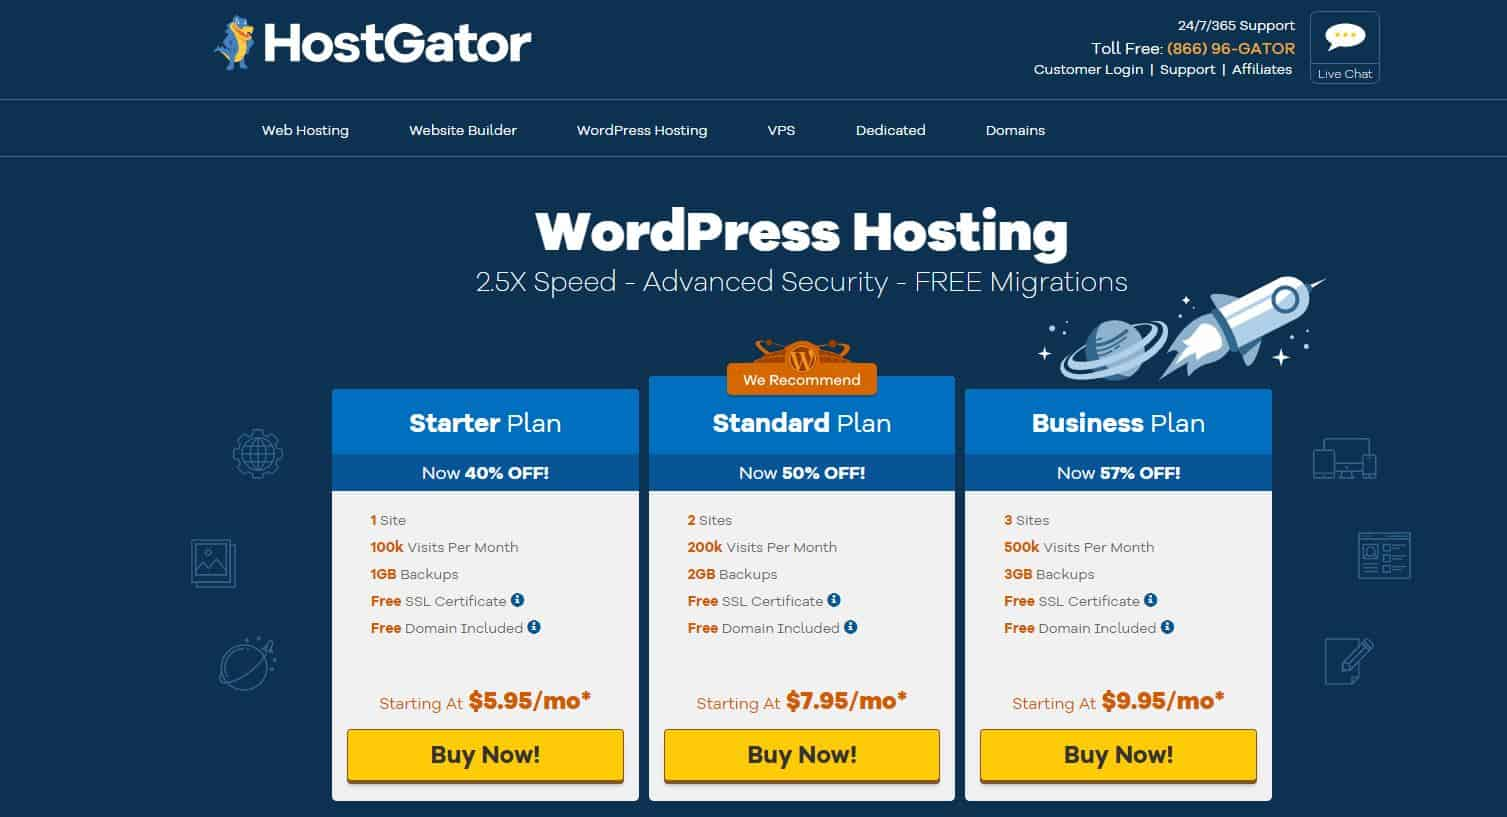 HostGator Managed WordPress hosting